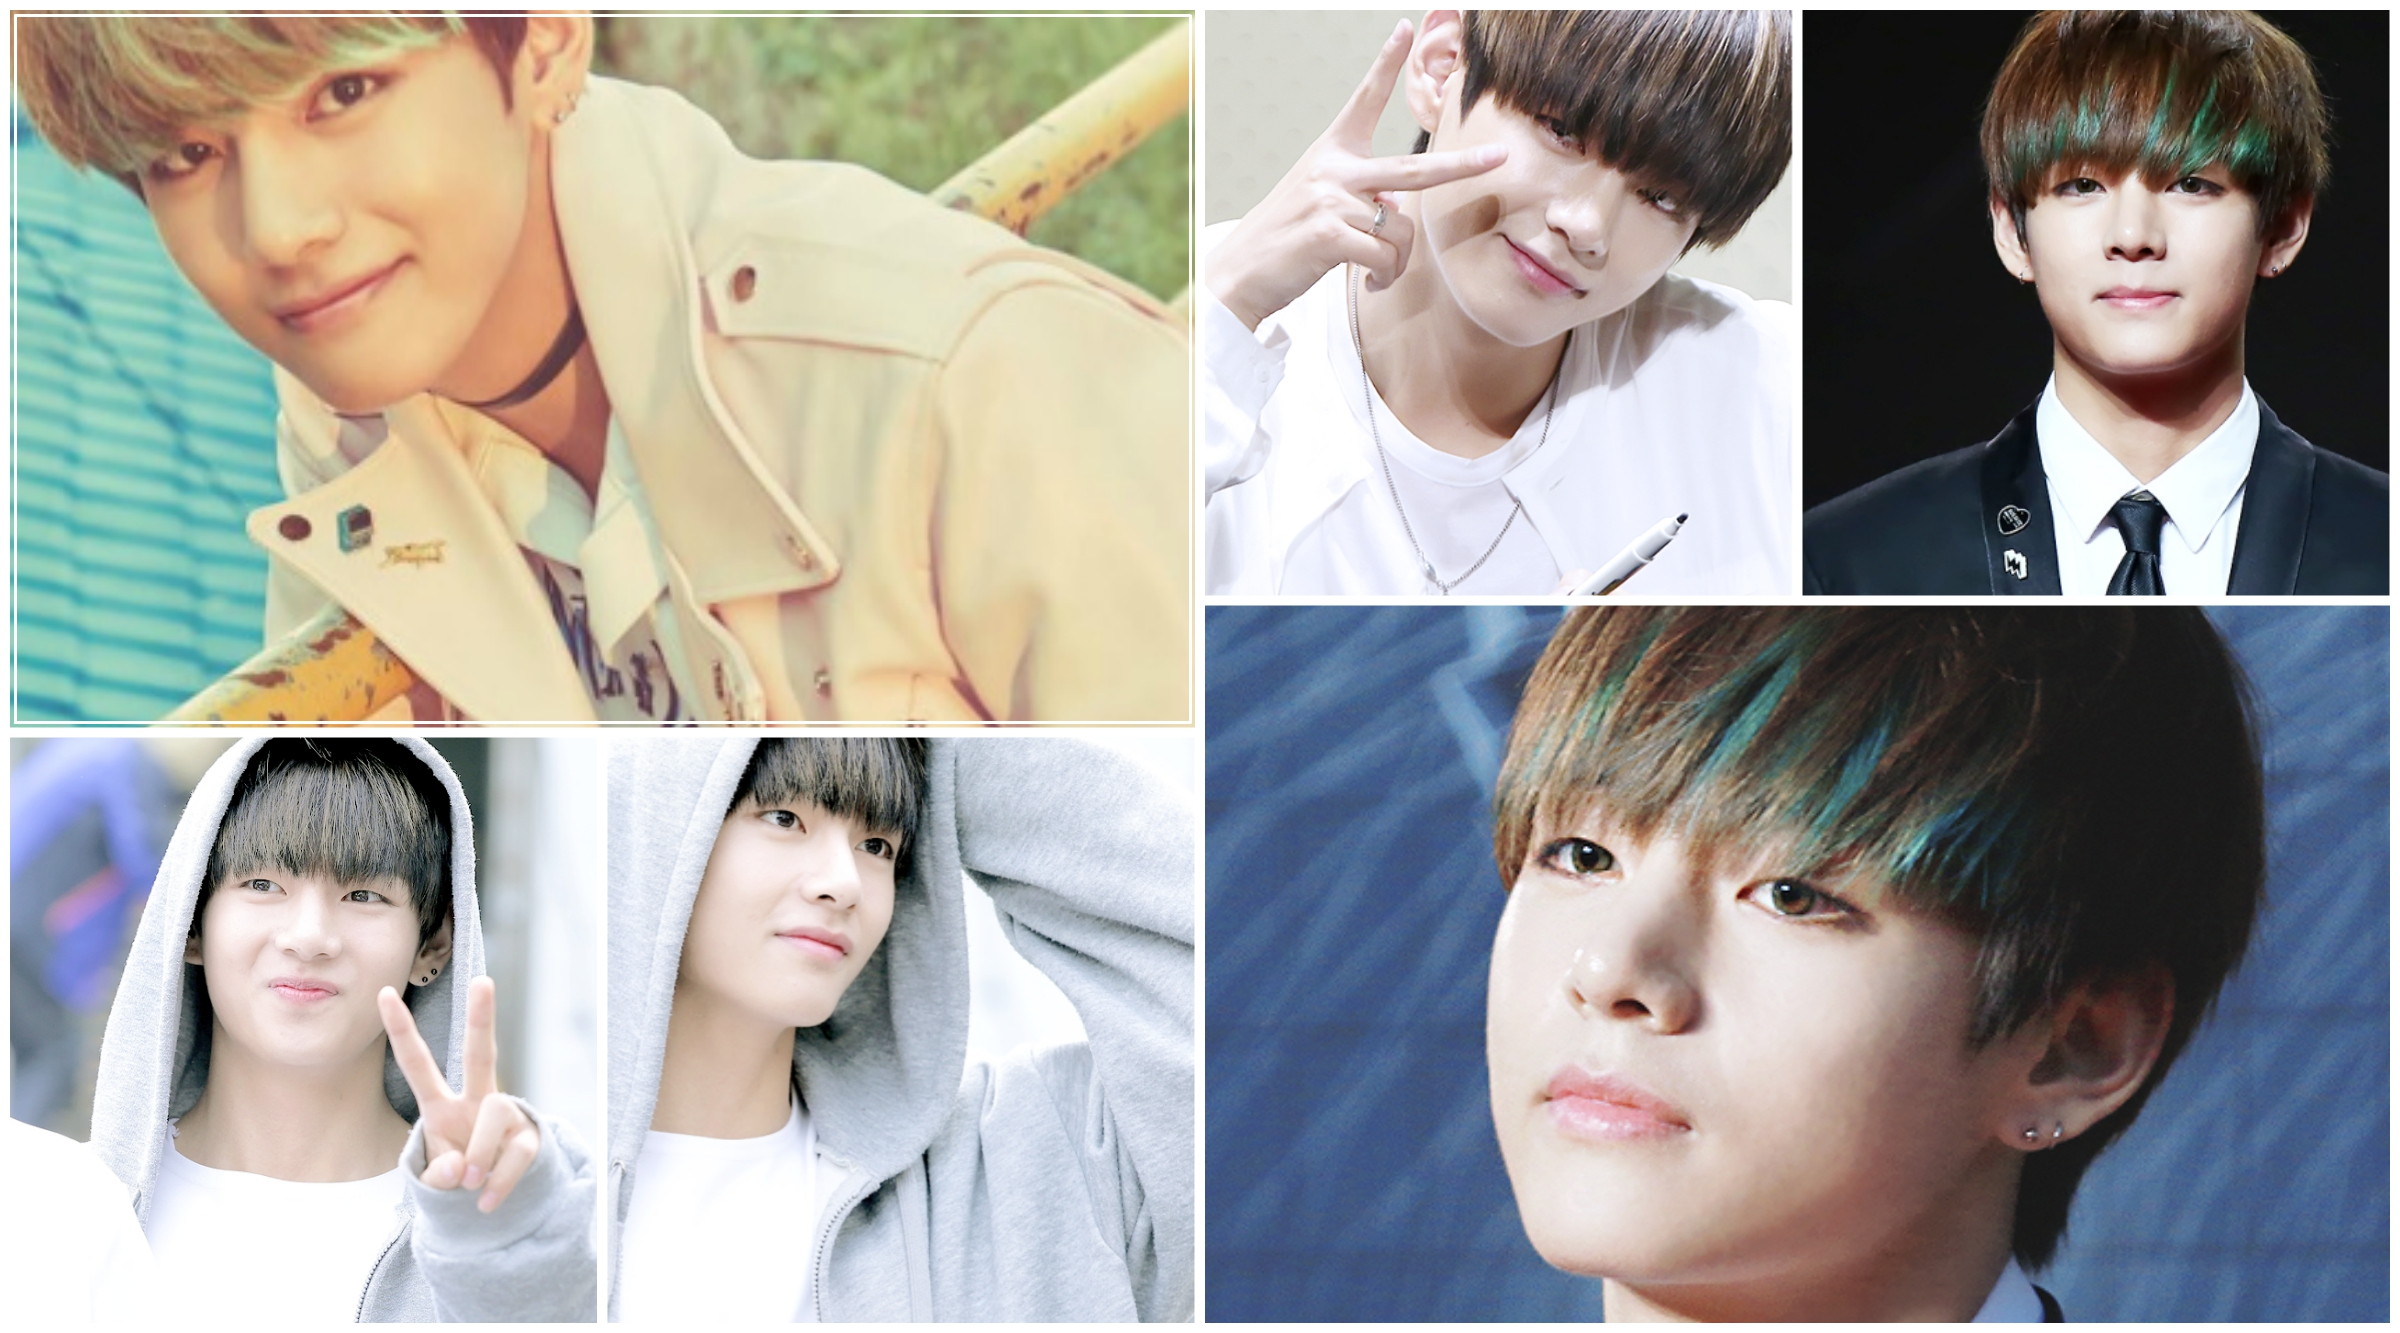 V Bts Images Kim Taehyung V Bts Wallpaper Hd Wallpaper And